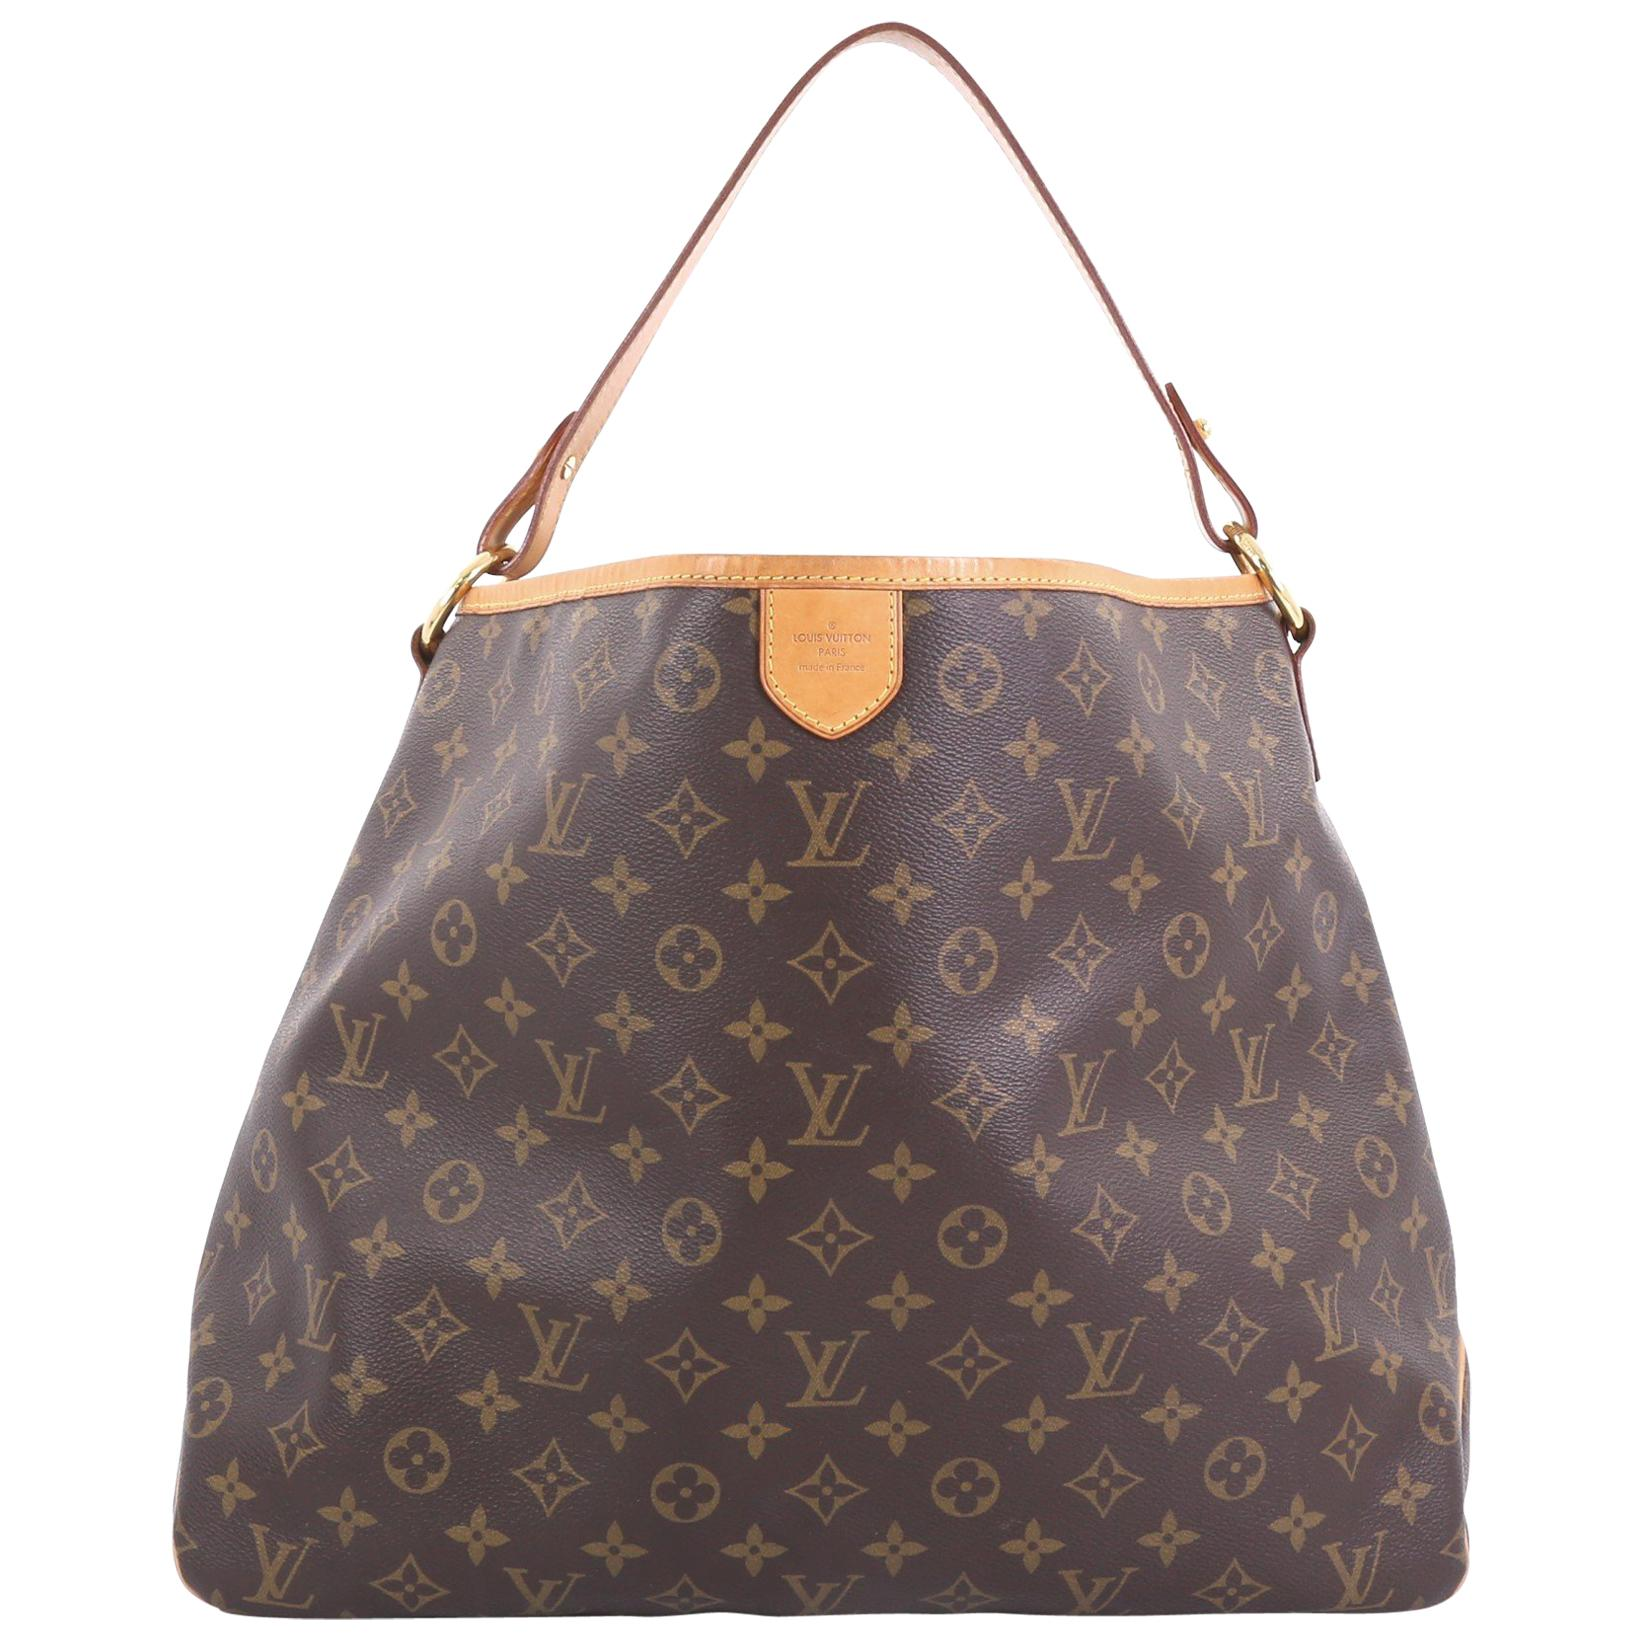 8add932f16c4 Vintage Louis Vuitton Handbags and Purses - 4